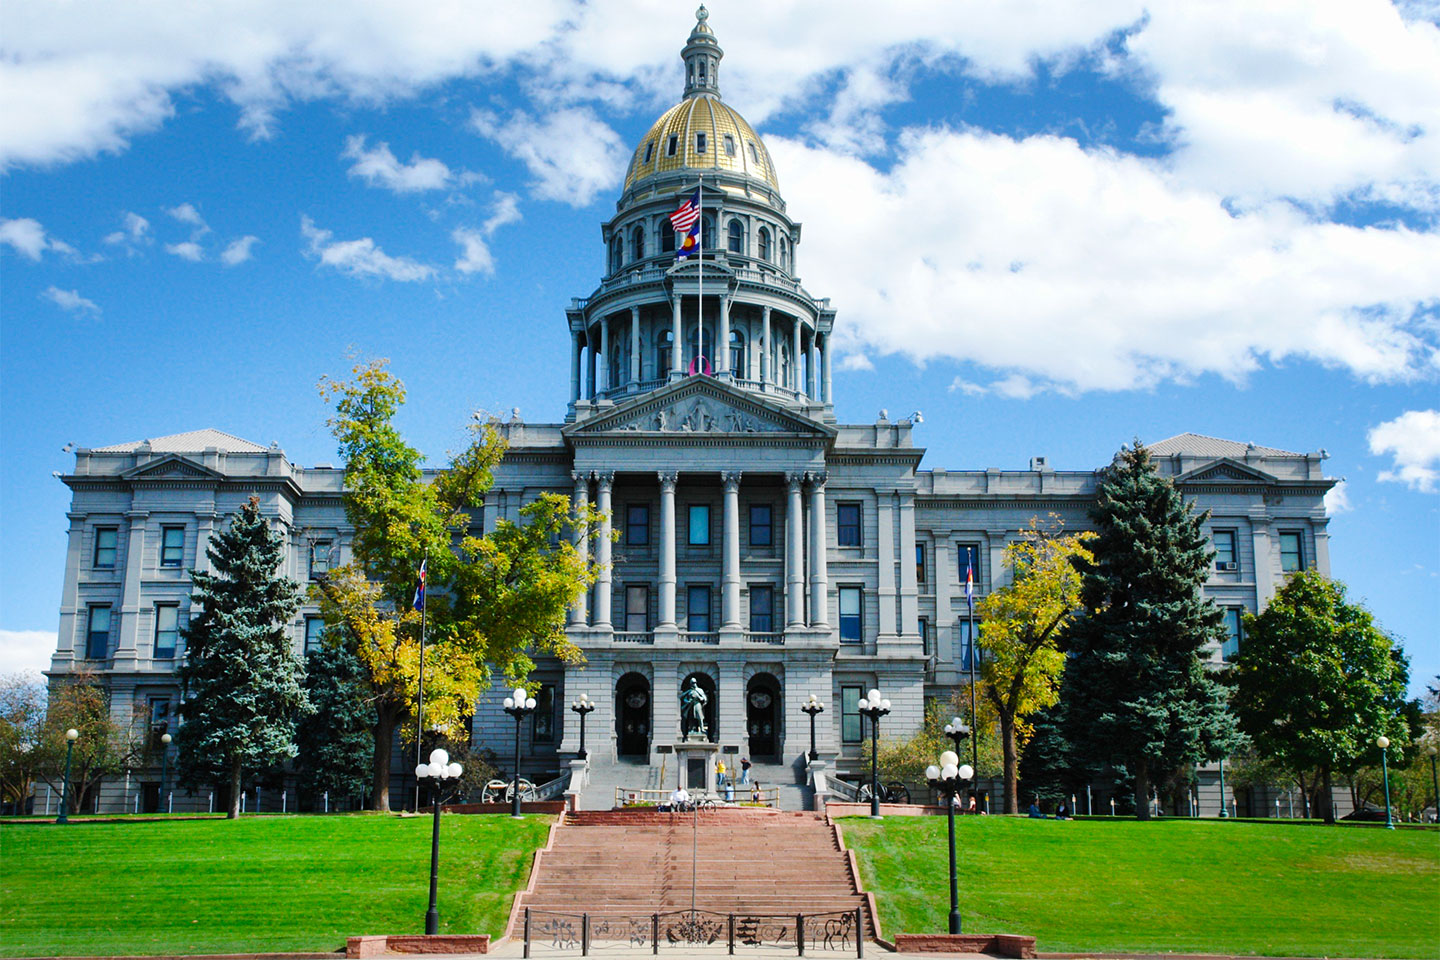 Things to Do in Denver - Colorado State Capitol Building in Denver